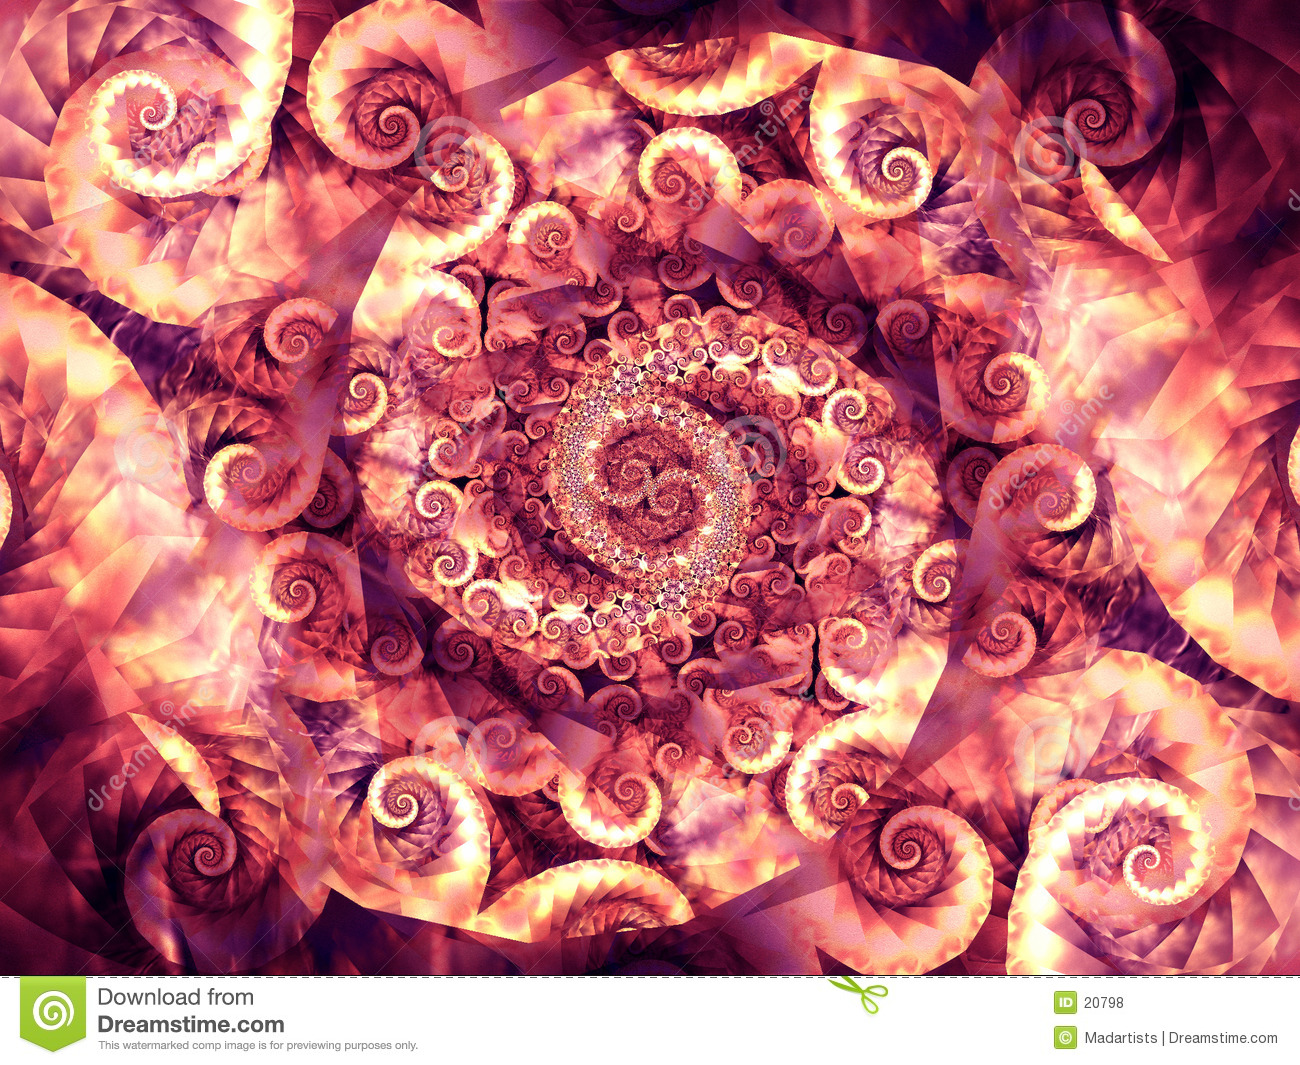 cool spirals swirls textures royalty free stock photos - image: 20798